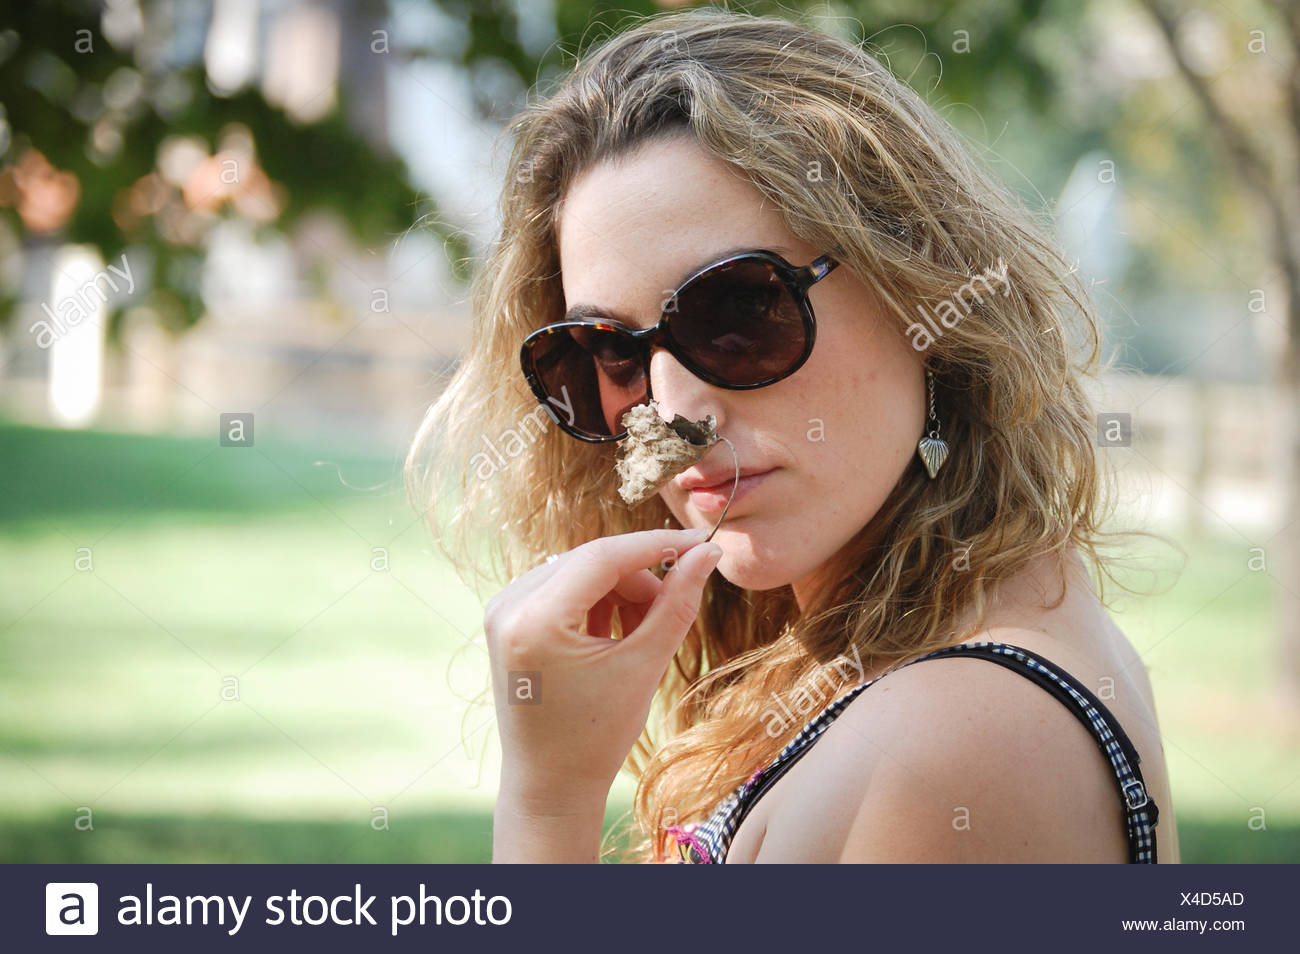 Portrait of young woman smelling flower - Stock Image